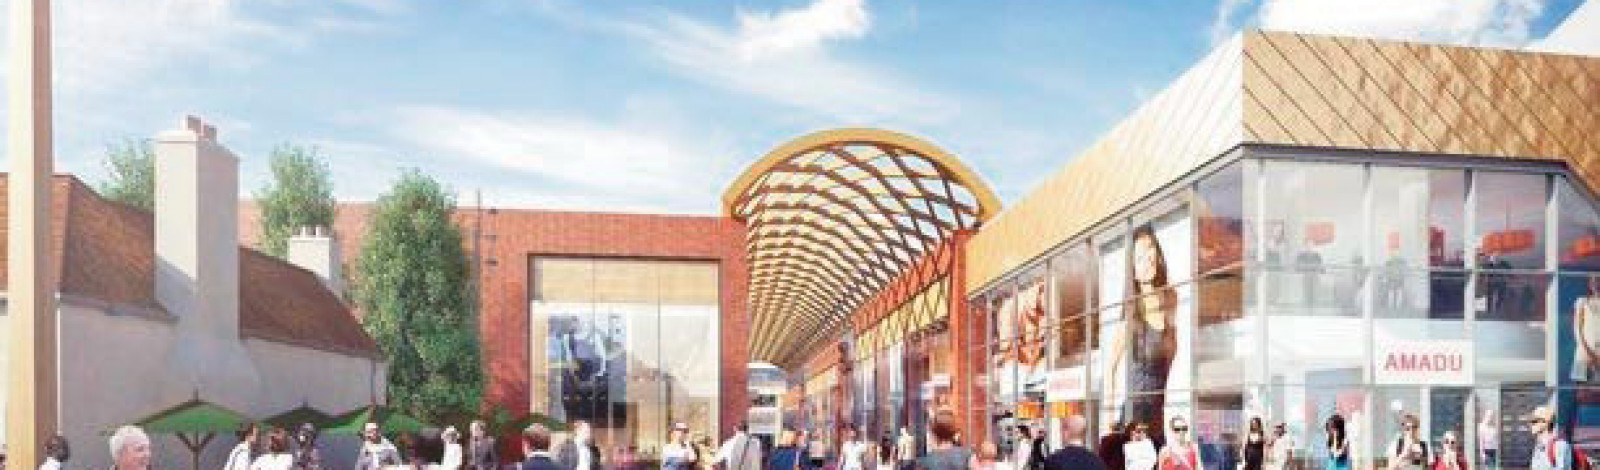 Bracknell Retail Quarter – design and construction of multi utility service diversions and new utility routes - Clancy Docwra